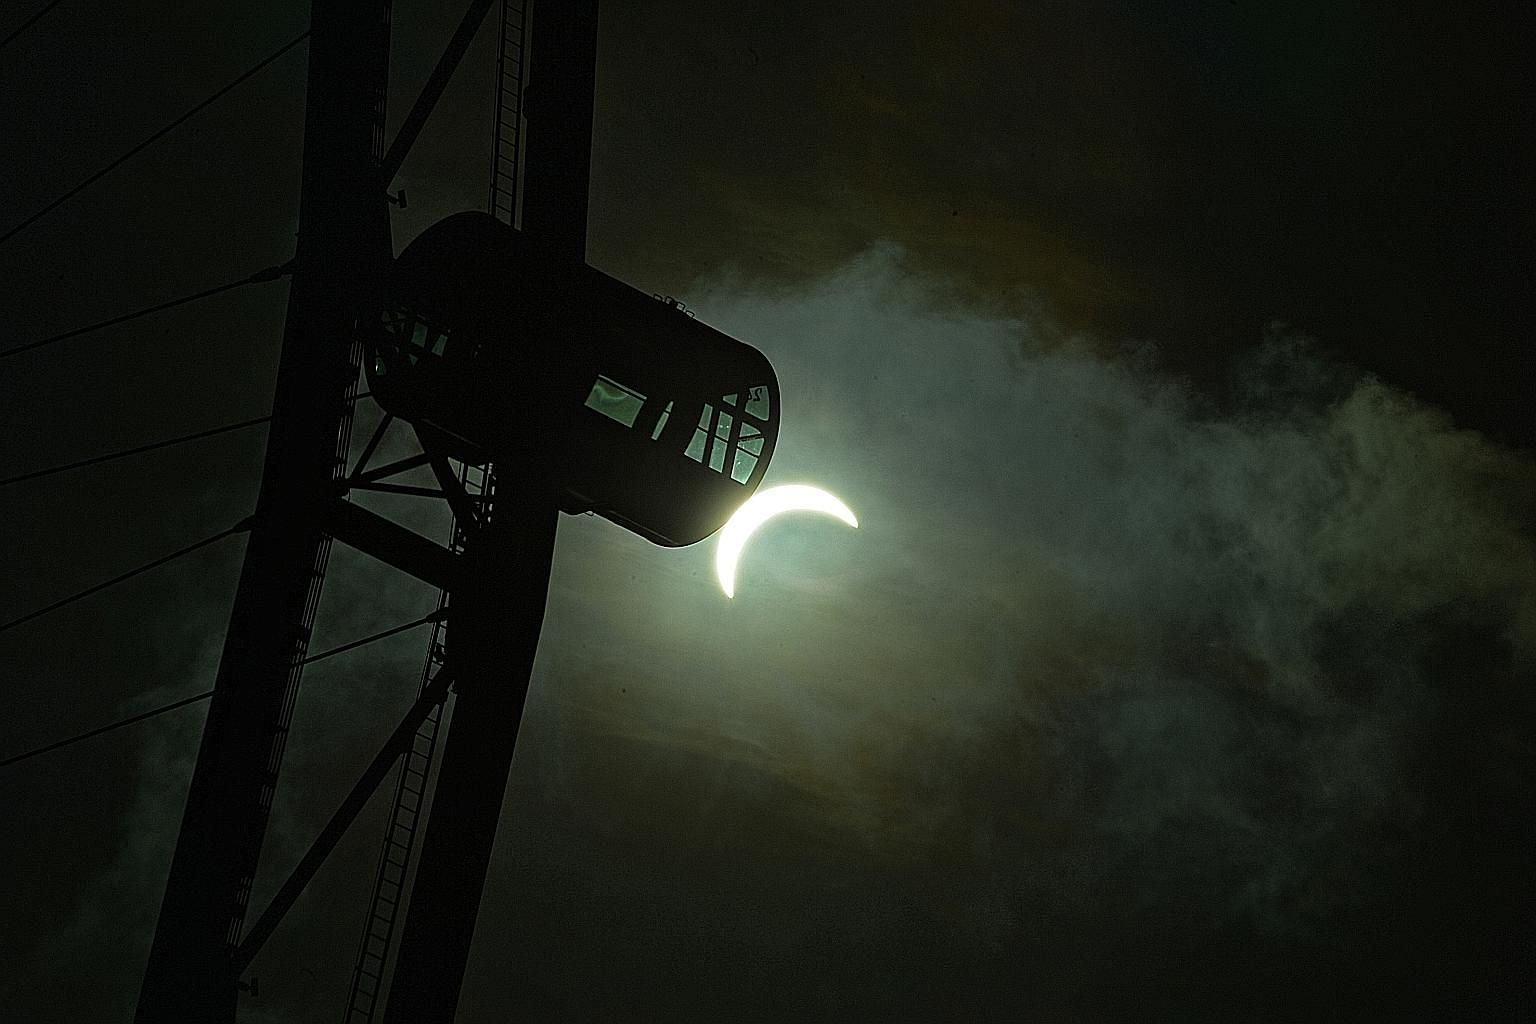 The Sun seen as a crescent at 8.29am yesterday, with a capsule of the Singapore Flyer in the foreground. In Singapore, the solar eclipse started at about 7.20am and peaked just past 8.20am.